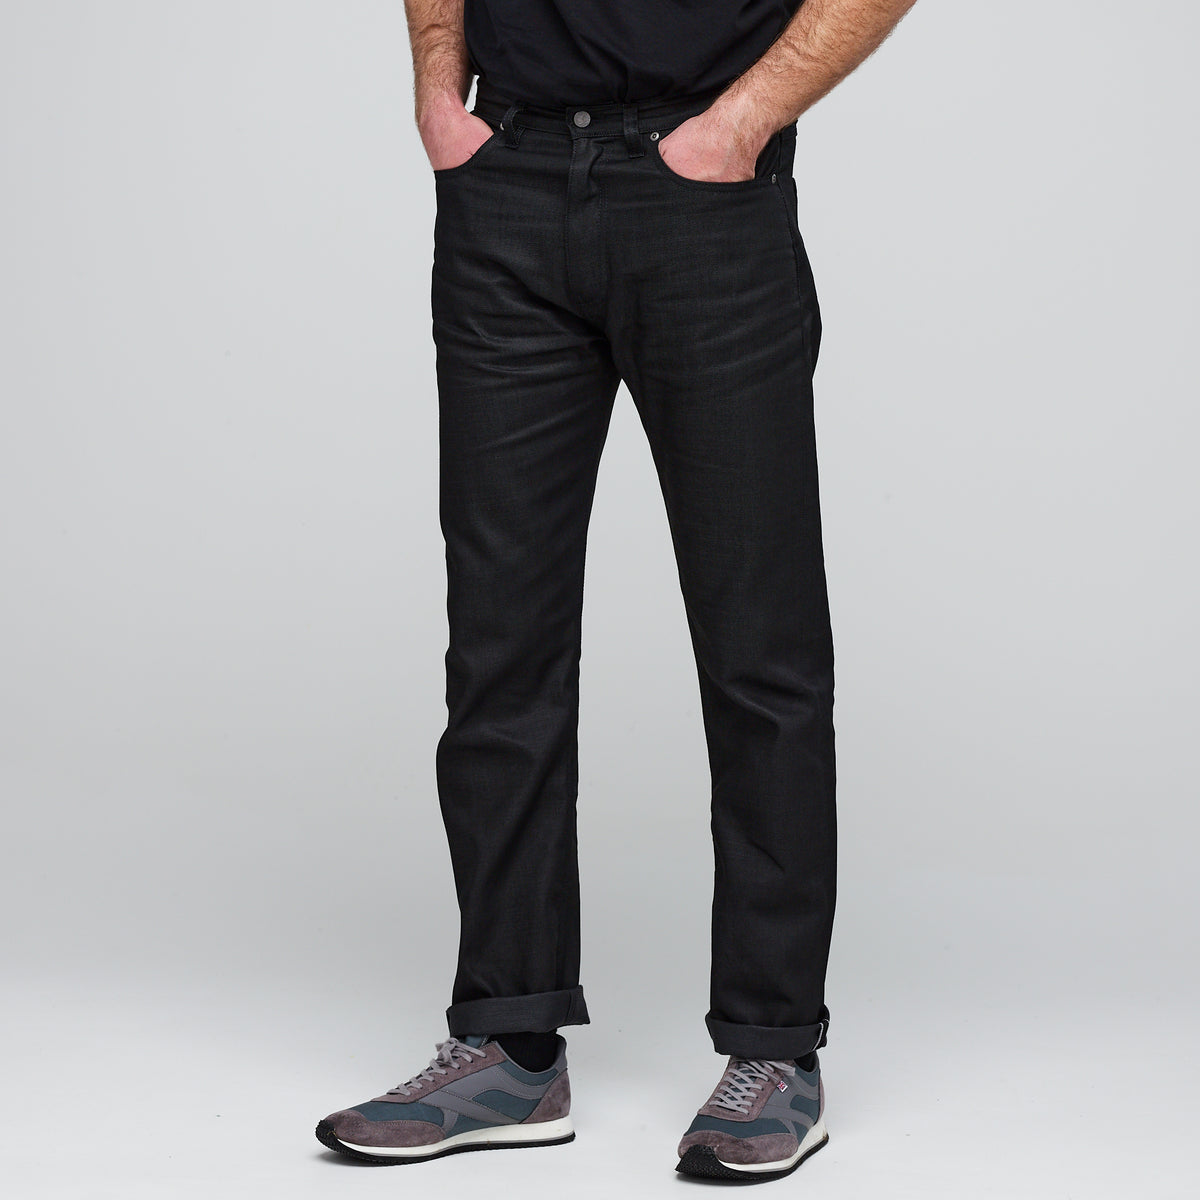 Men's Straight Cut Selvedge Jean - Black Raw Denim - Community Clothing